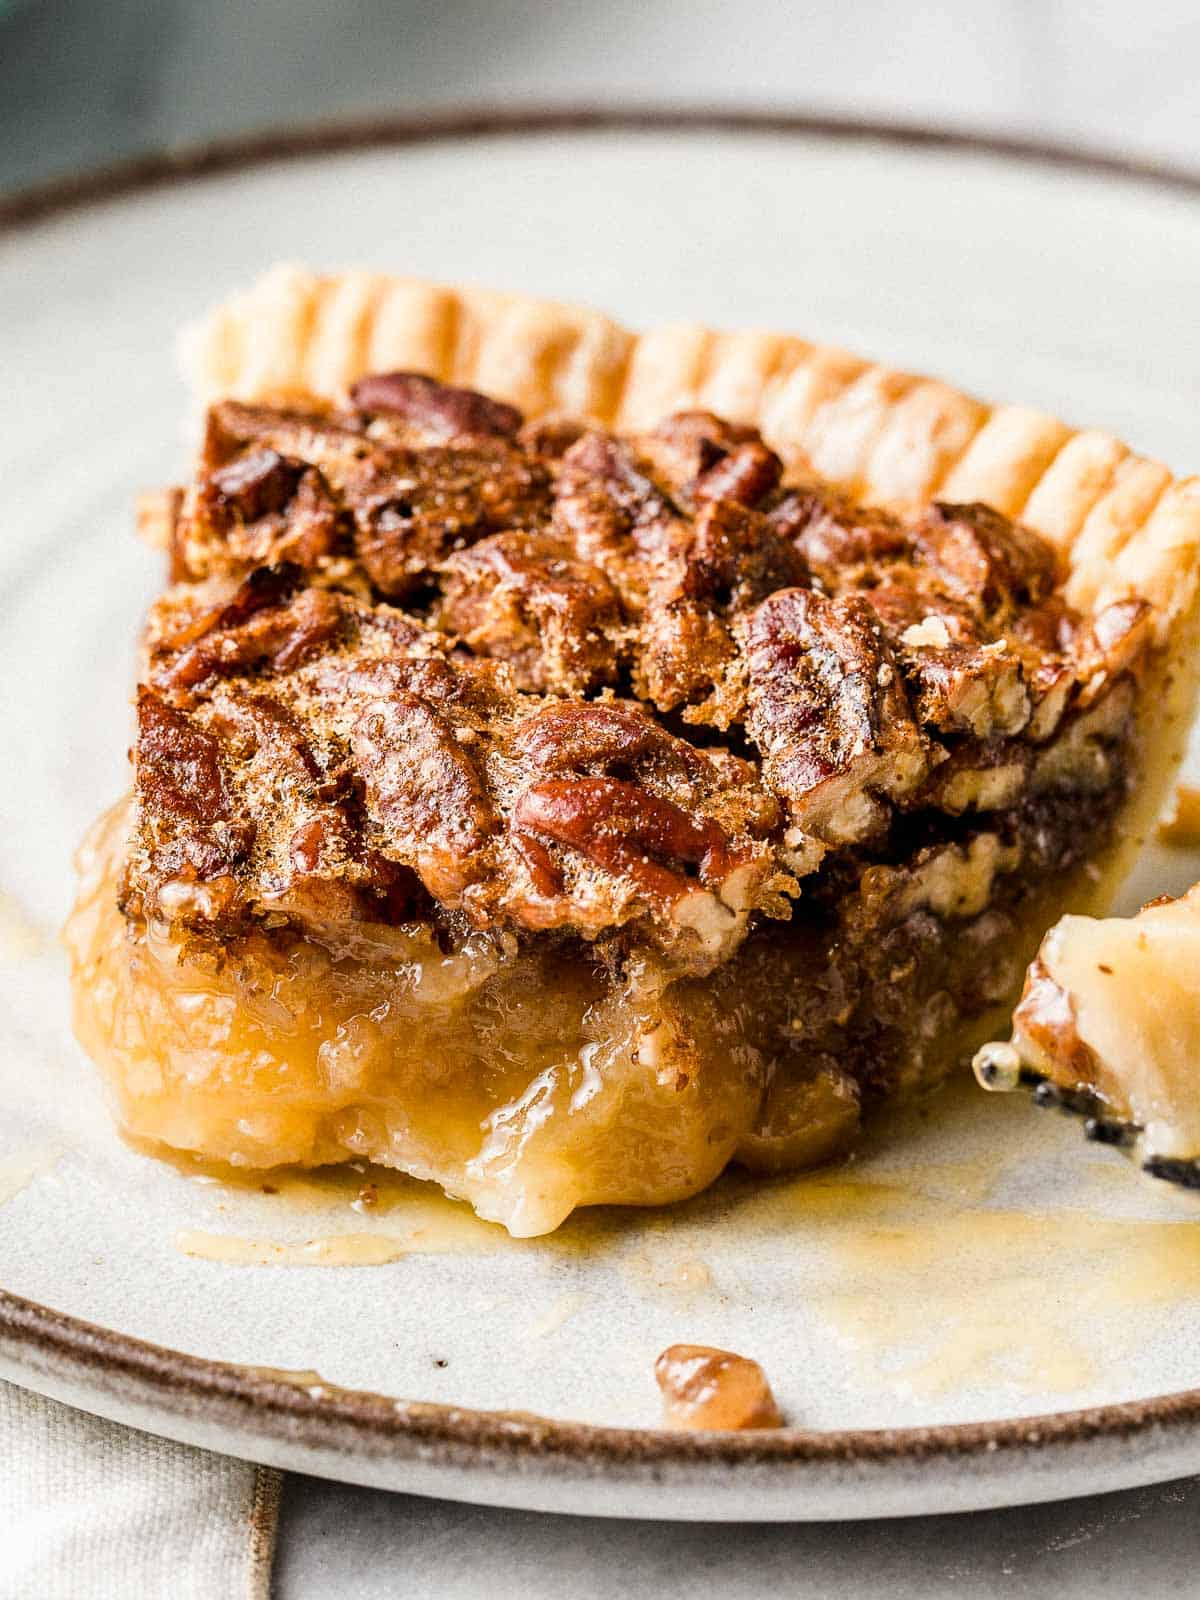 A slice of pecan pie recipe on a plate.